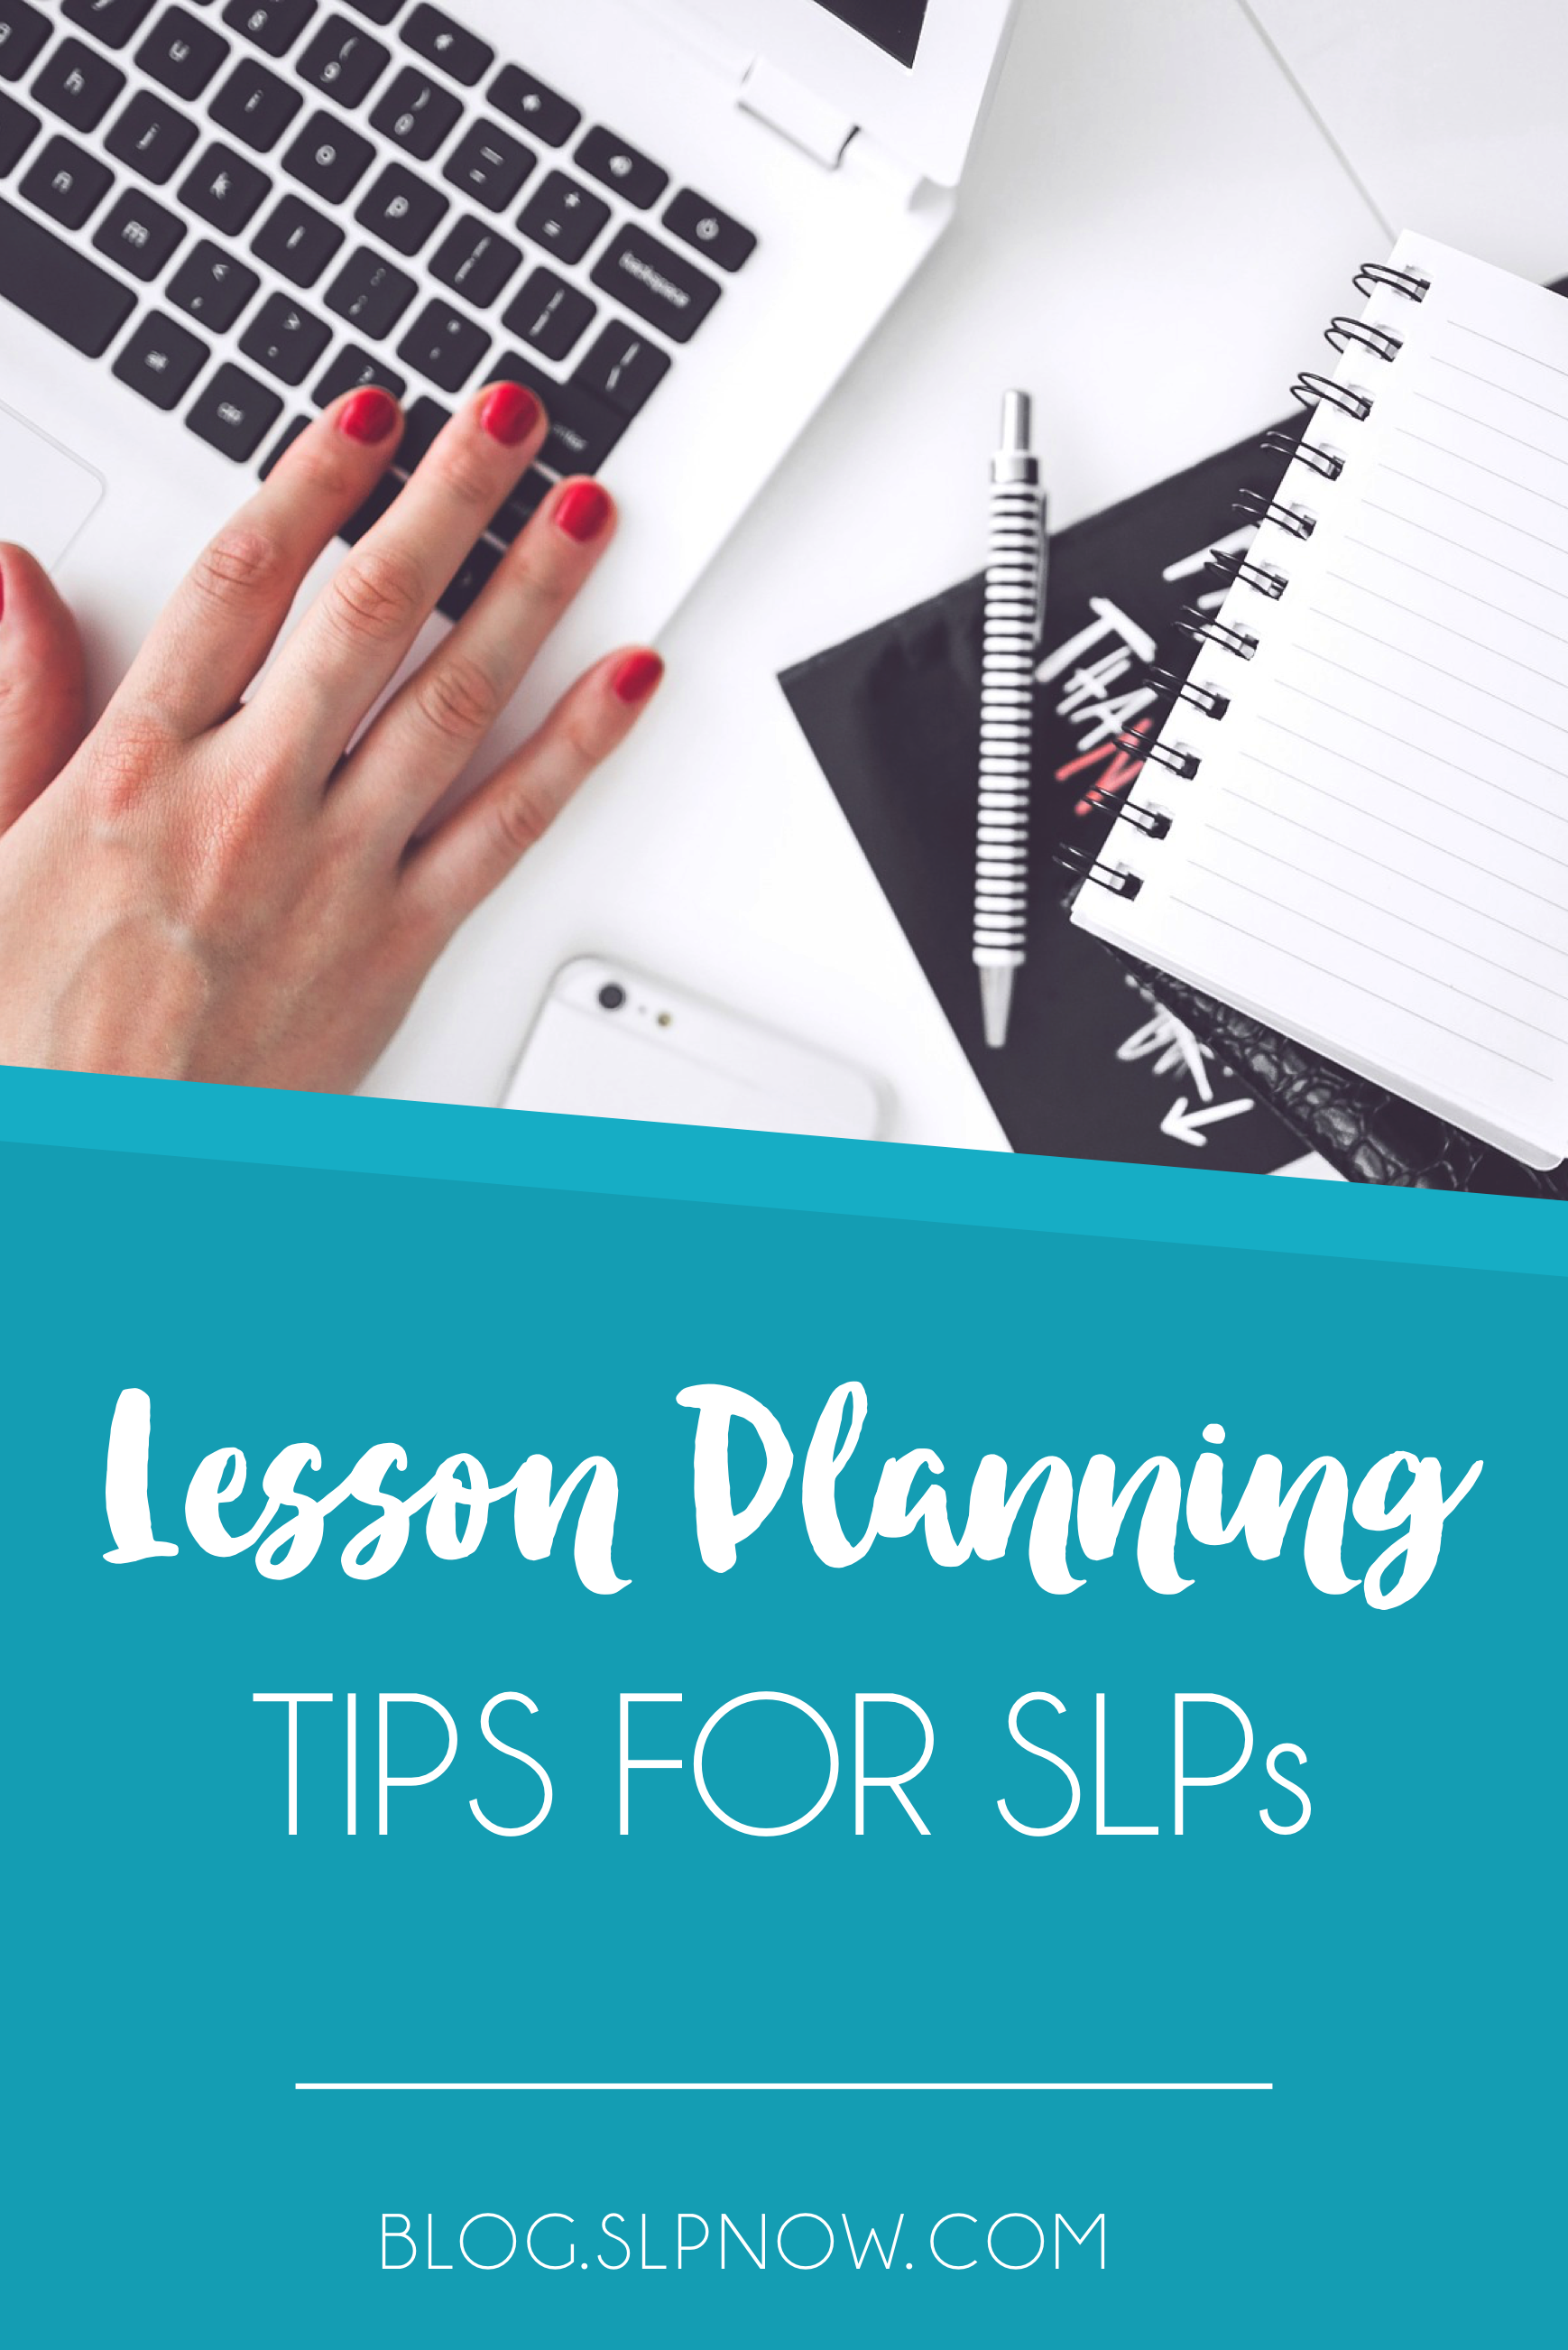 Teachers are the only educational professionals who need to create lesson plans - SLPs do, too! Do you want to make lesson planning easier on yourself? Join me for a FREE email series that will load you up with lesson planning tips and resources!